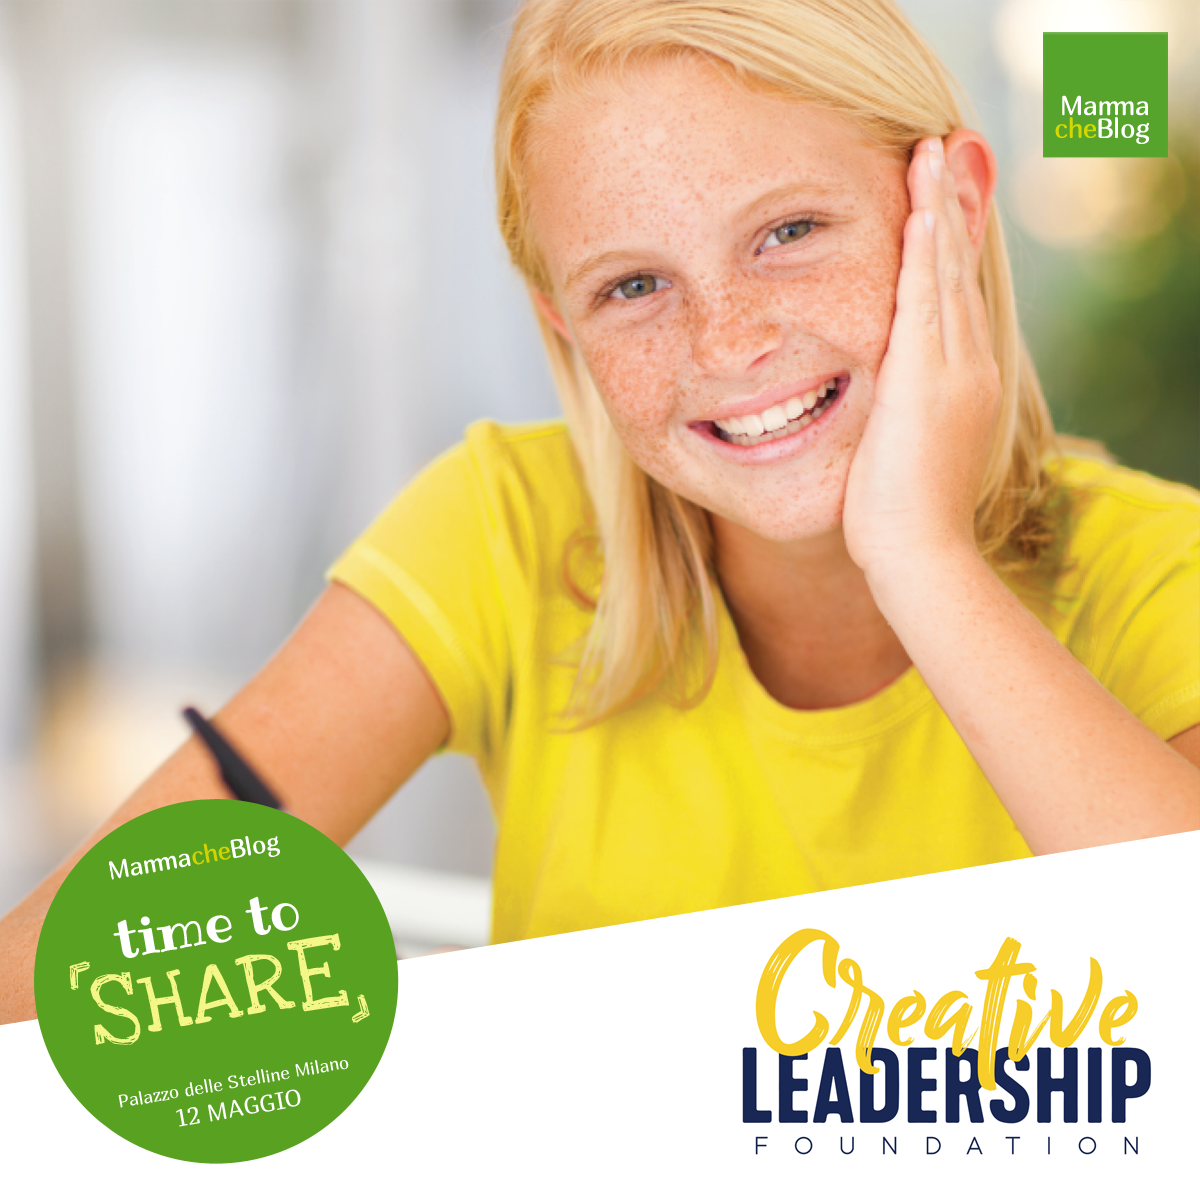 creative-leadership-foundation